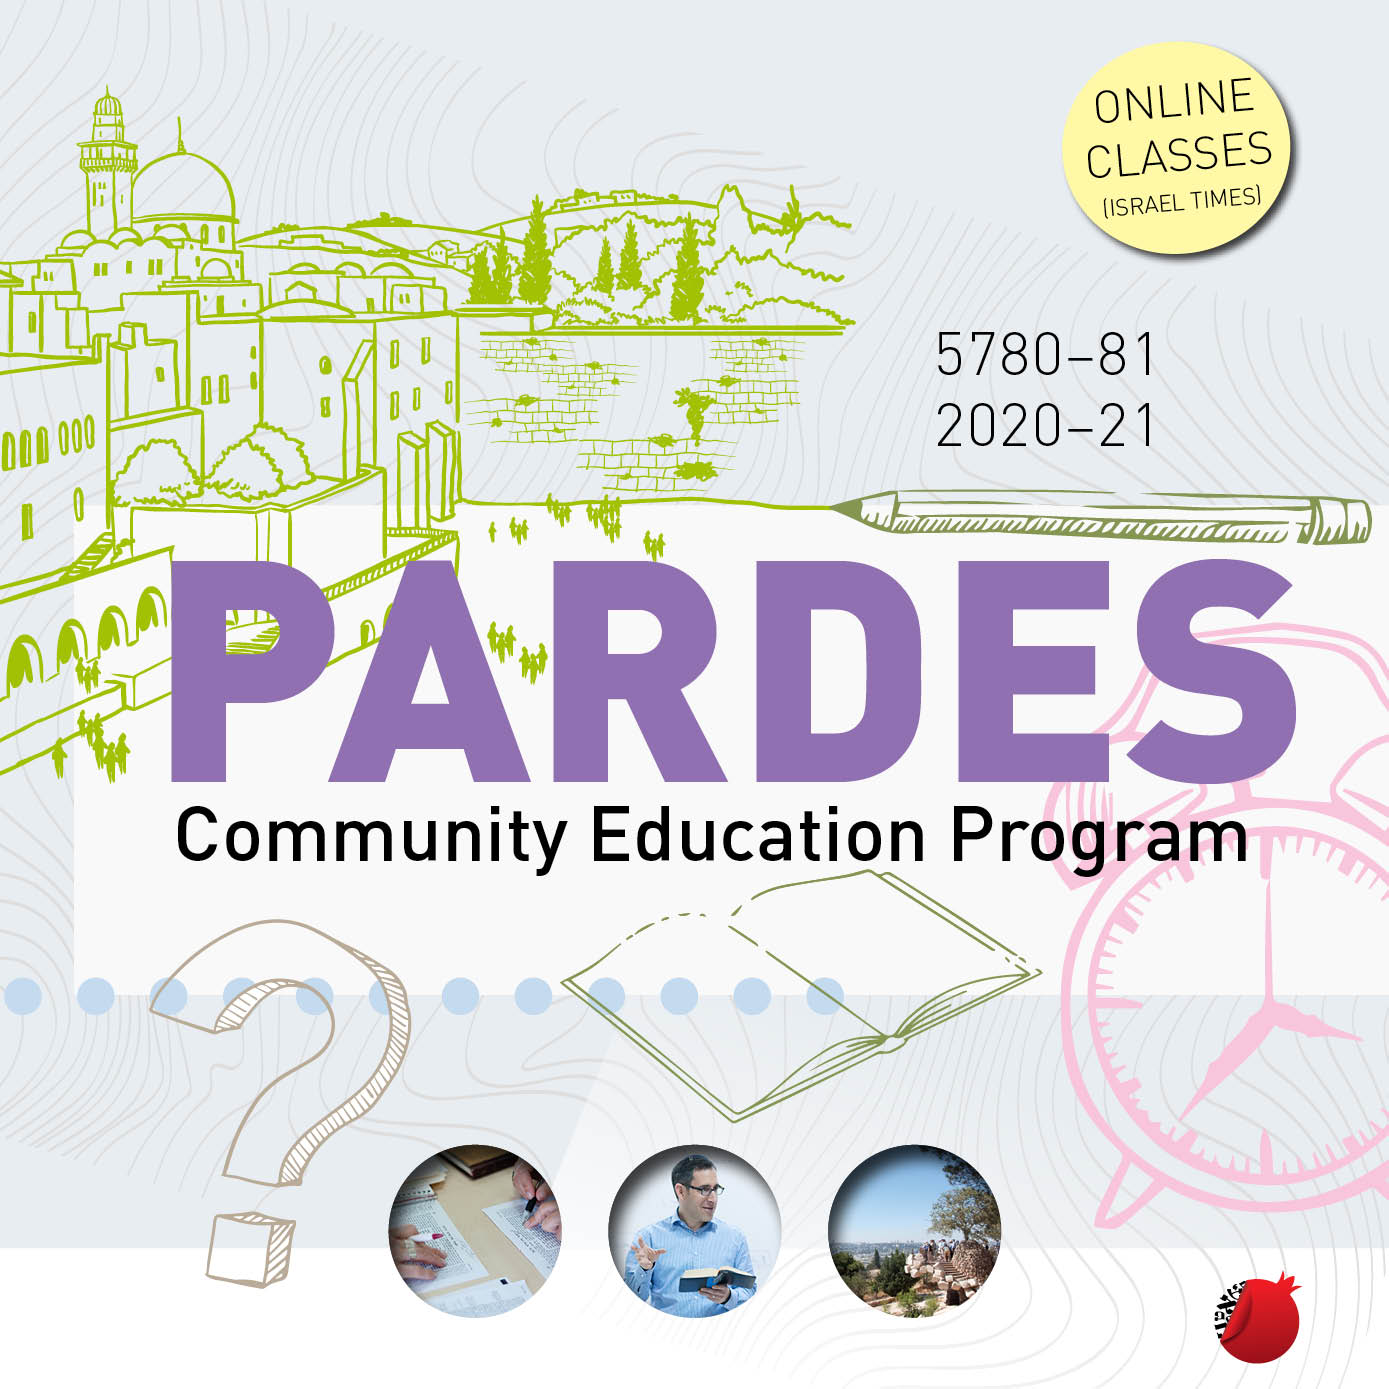 pardes community education 2020-21